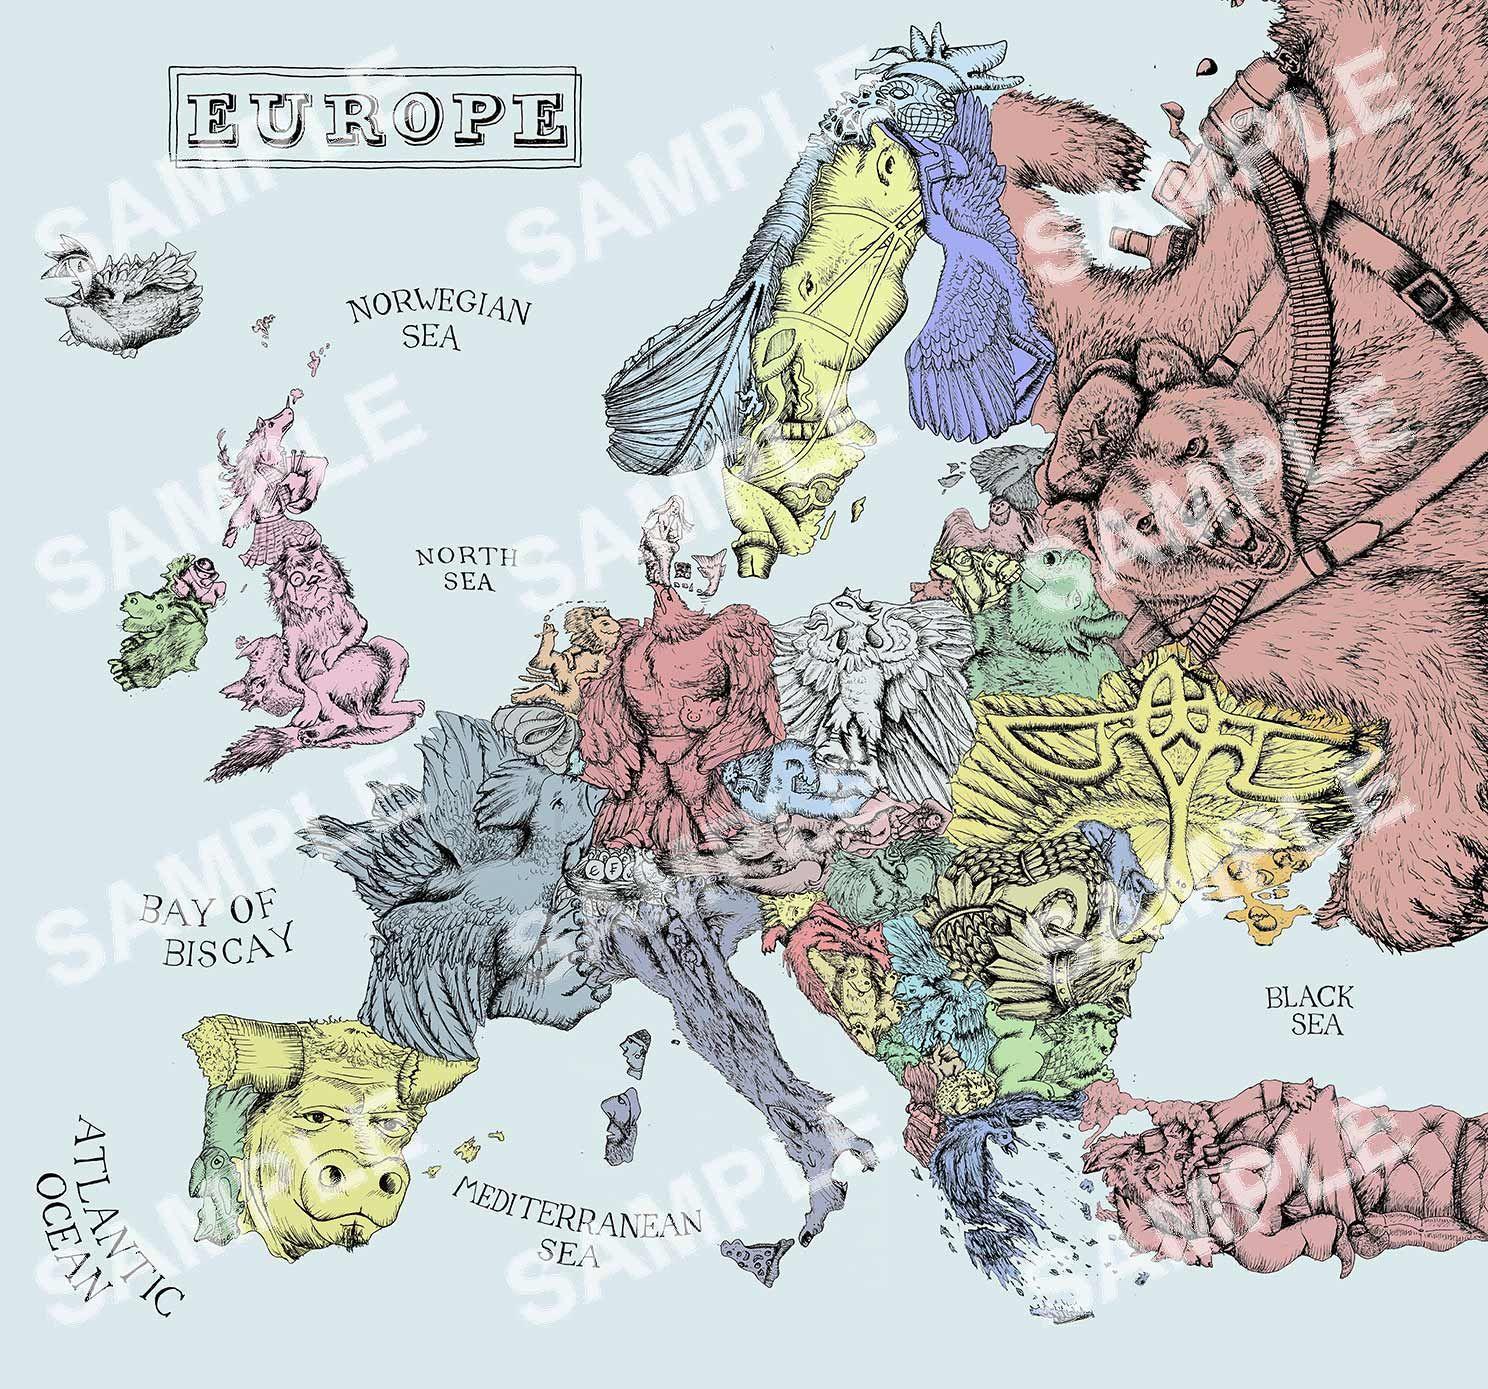 Europe In Symbols Illustrated Map Poster Buy It At Http - Buy map posters